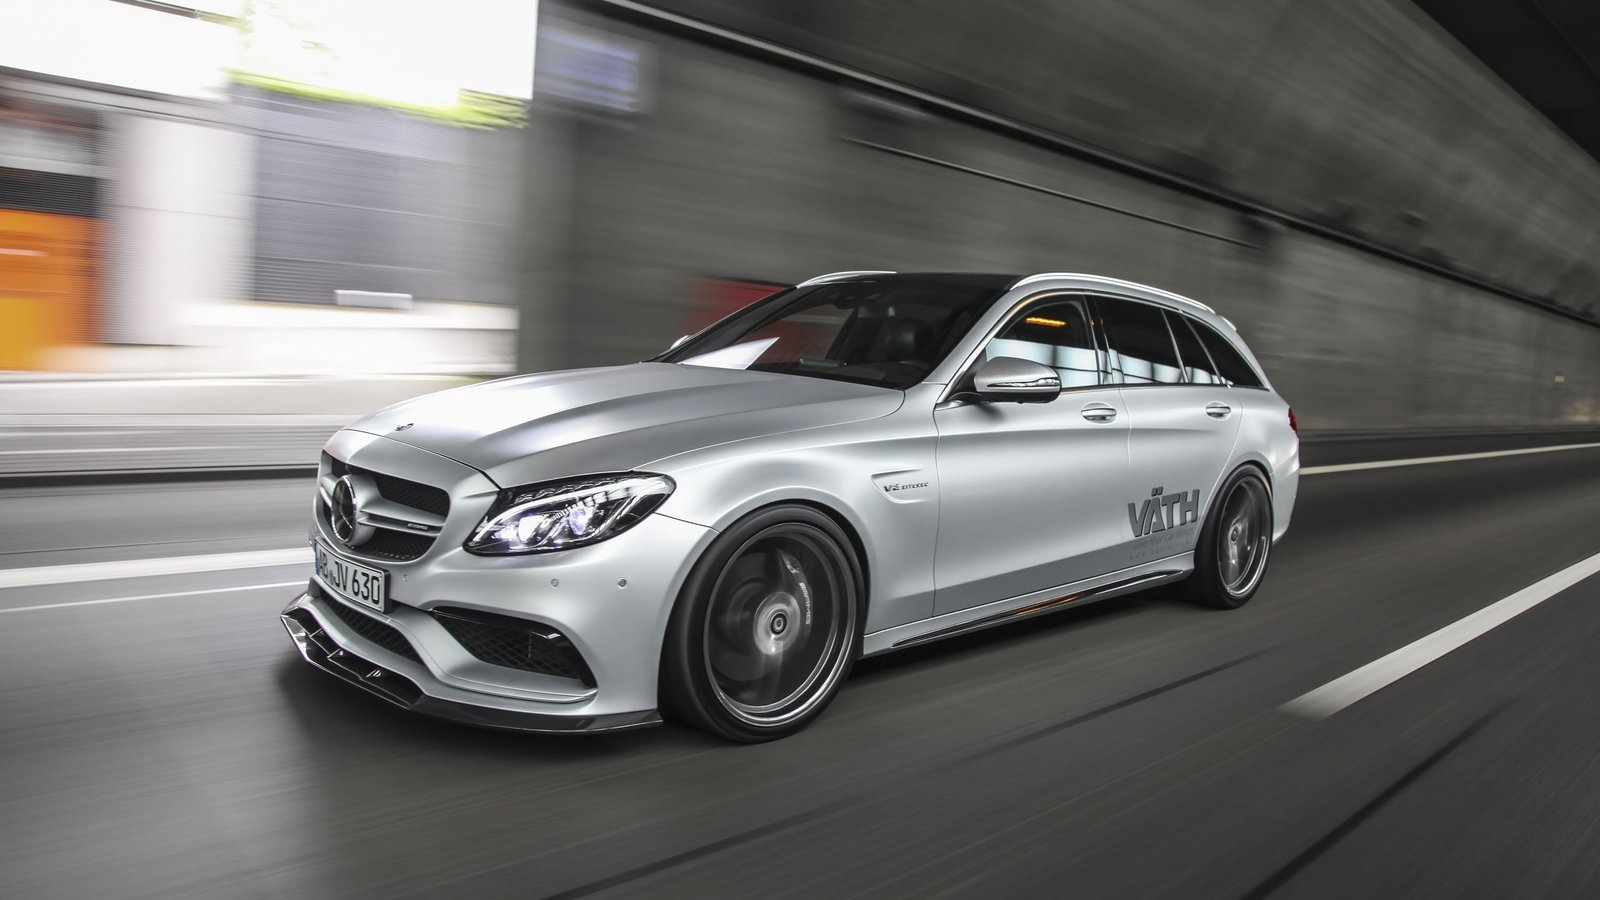 2017 mercedes amg c 63 estate by vath pictures photos wallpapers top speed. Black Bedroom Furniture Sets. Home Design Ideas